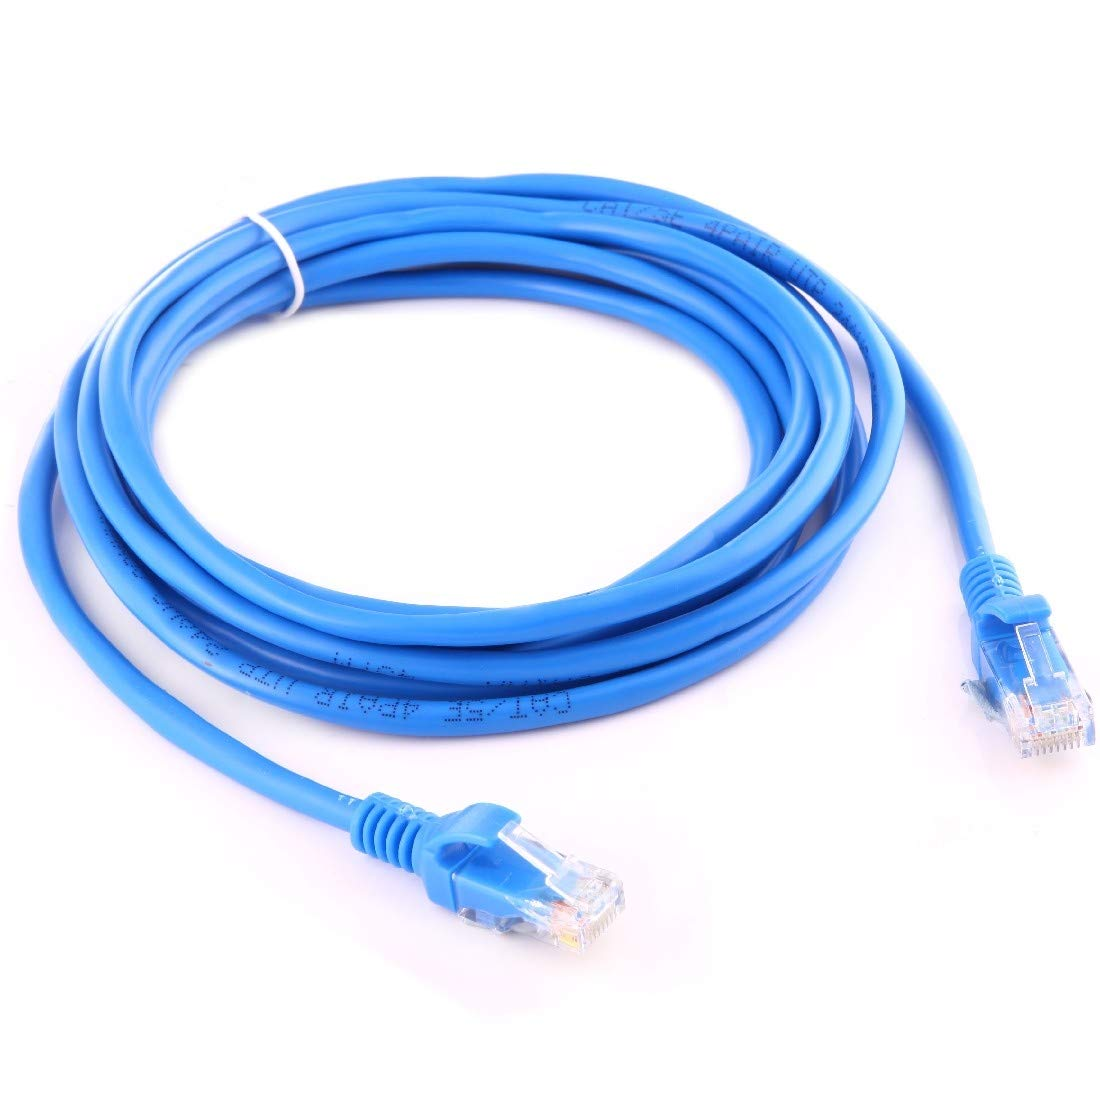 3m,24AWG Stranded Copper Conductor Multifunctional Meet Different Needs Length Cat5e Network Cable